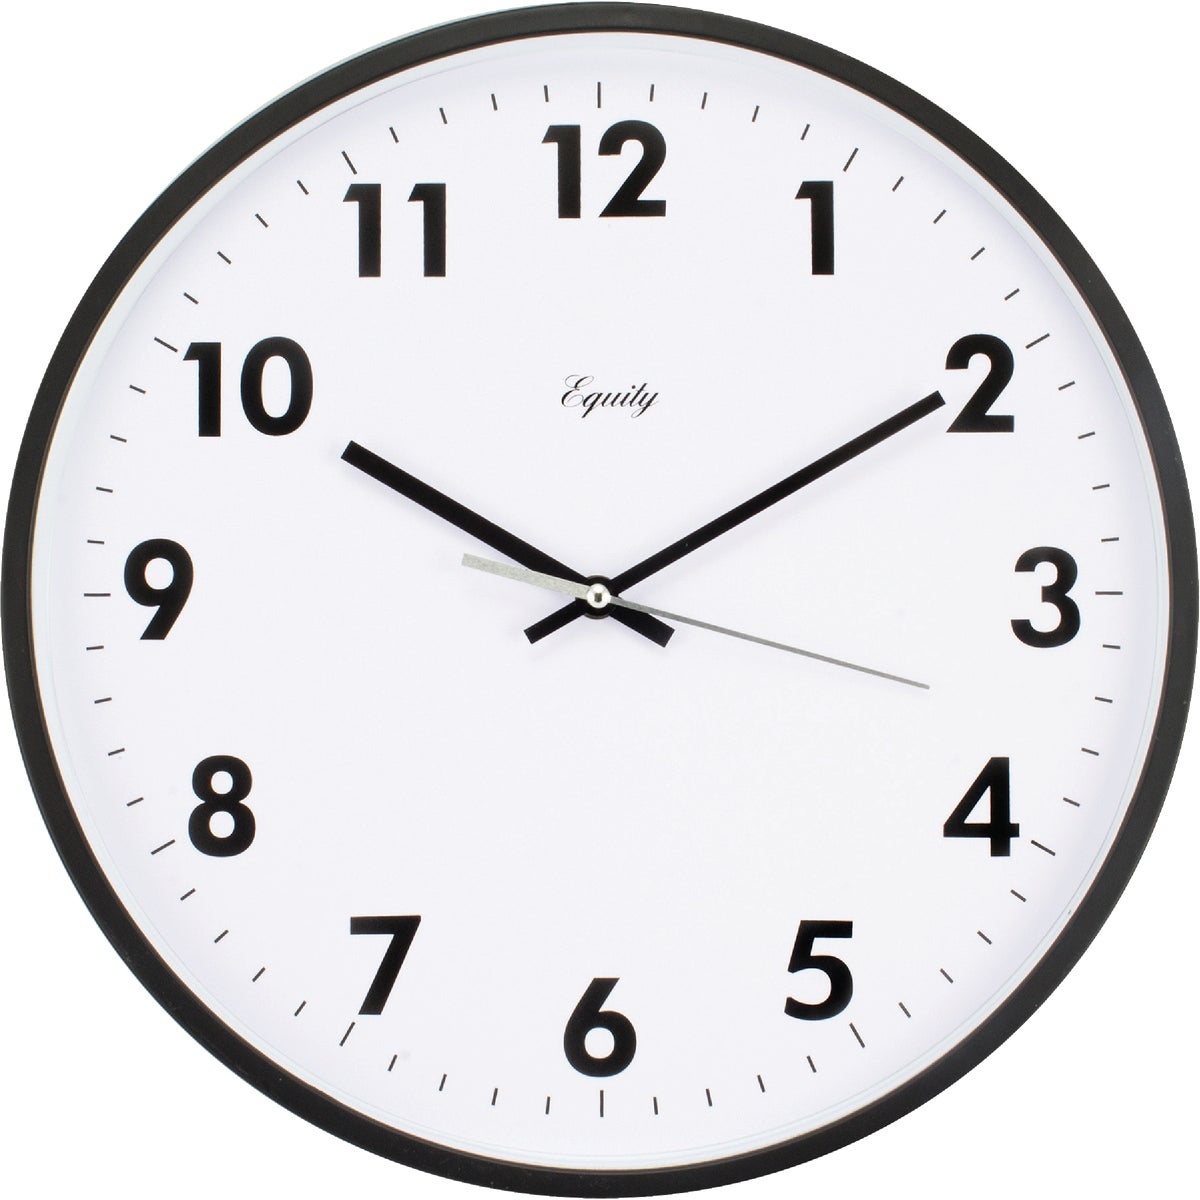 "13.5"" QUARTZ WALL CLOCK"